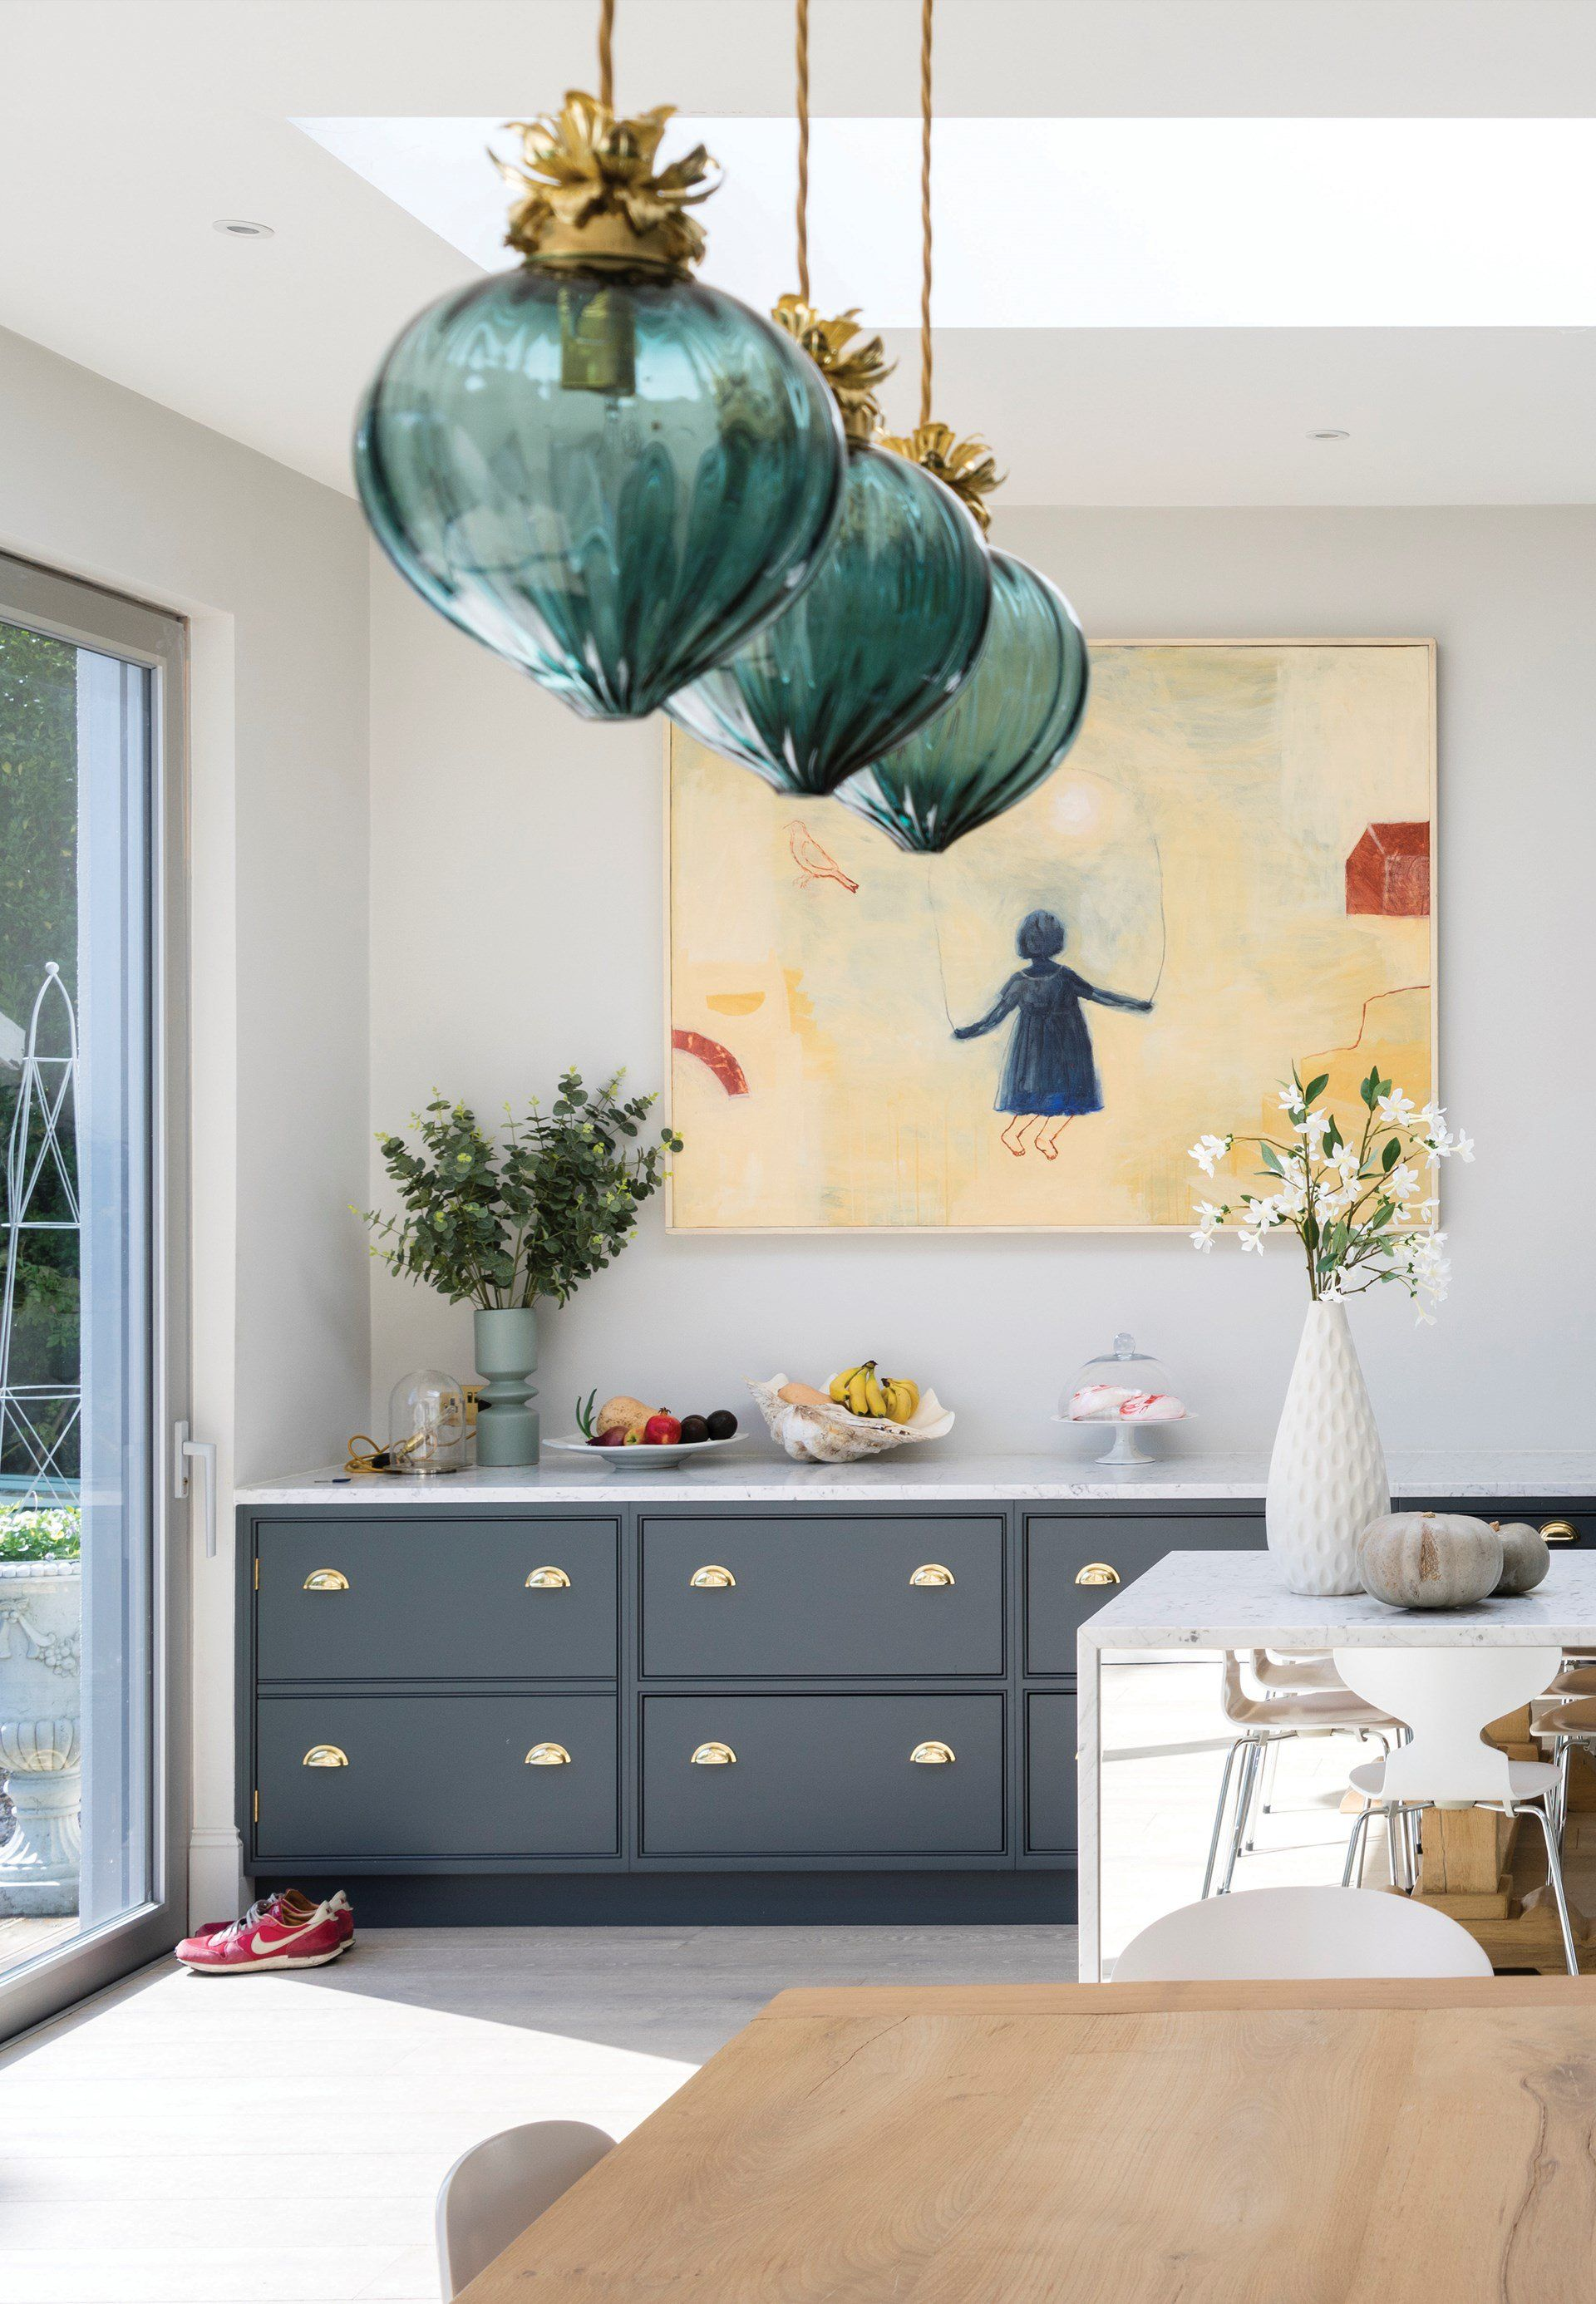 Best Tips For Painting Kitchen Cabinets From Farrow Ball 640 x 480